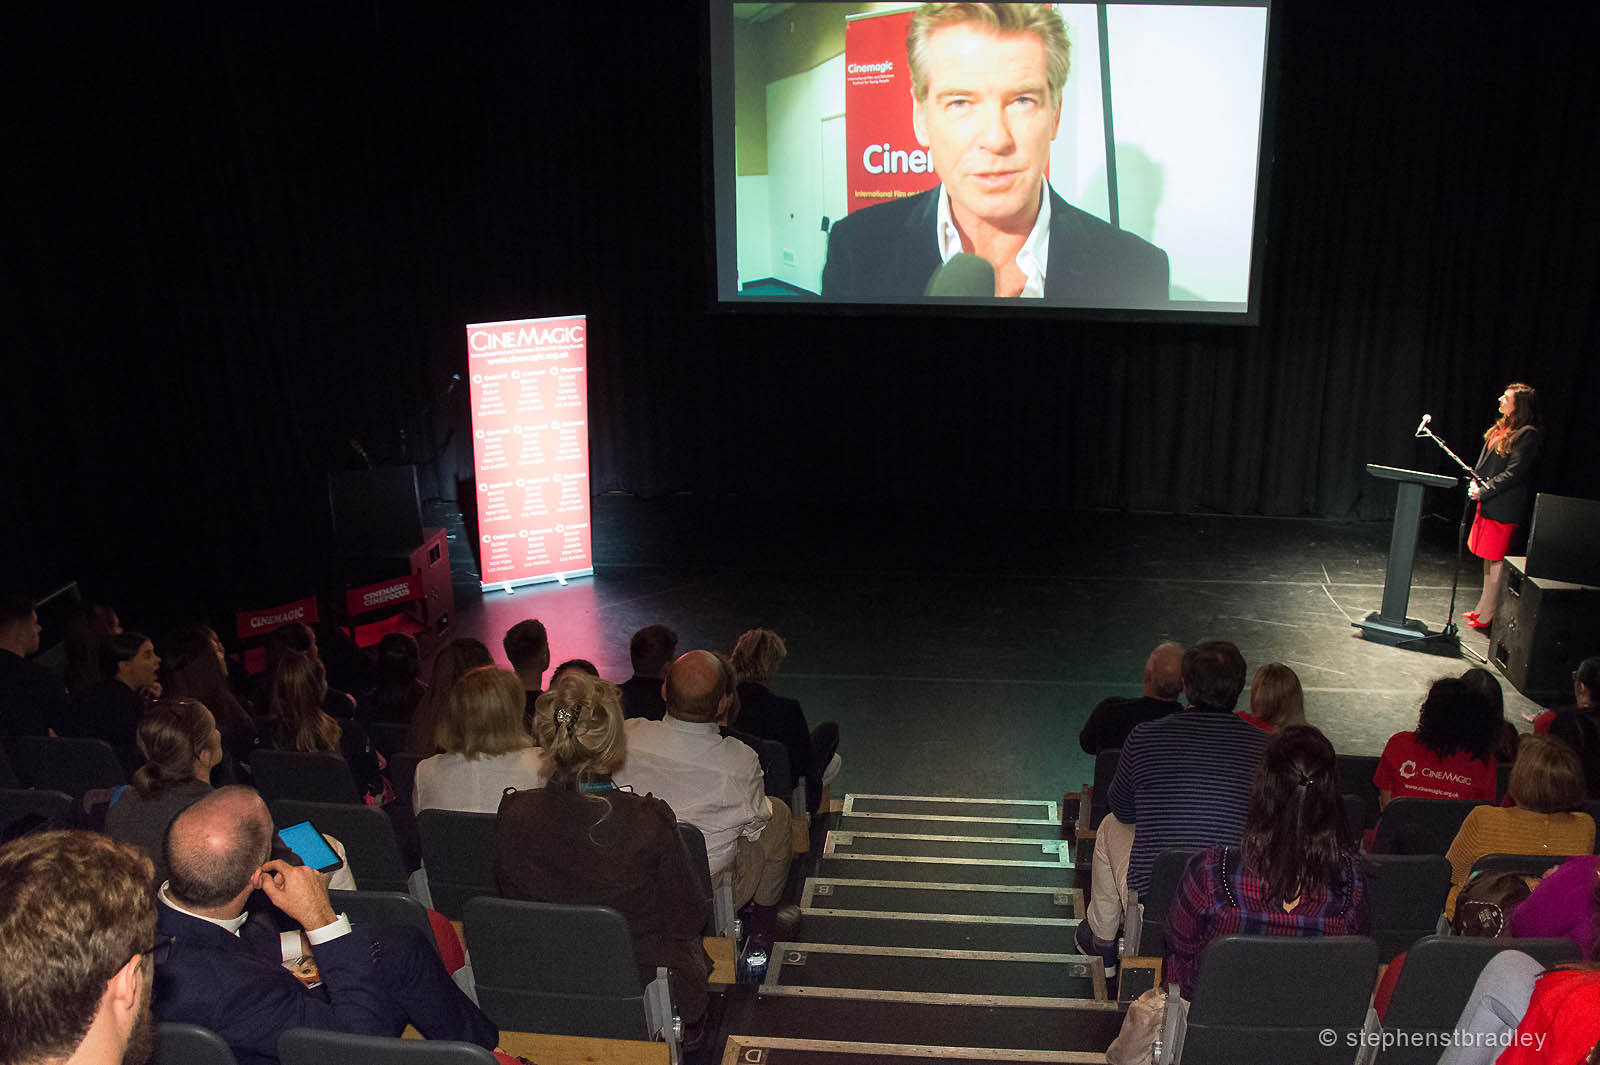 PR photography showing Pierce Brosnan video presentation and audience, photo 8247 - PR Photographer Dublin Ireland photo 8247 - PR photo by Stephen S T Bradley, commercial, advertising, social media, editorial, annual report, PR photographer Dublin, Ireland